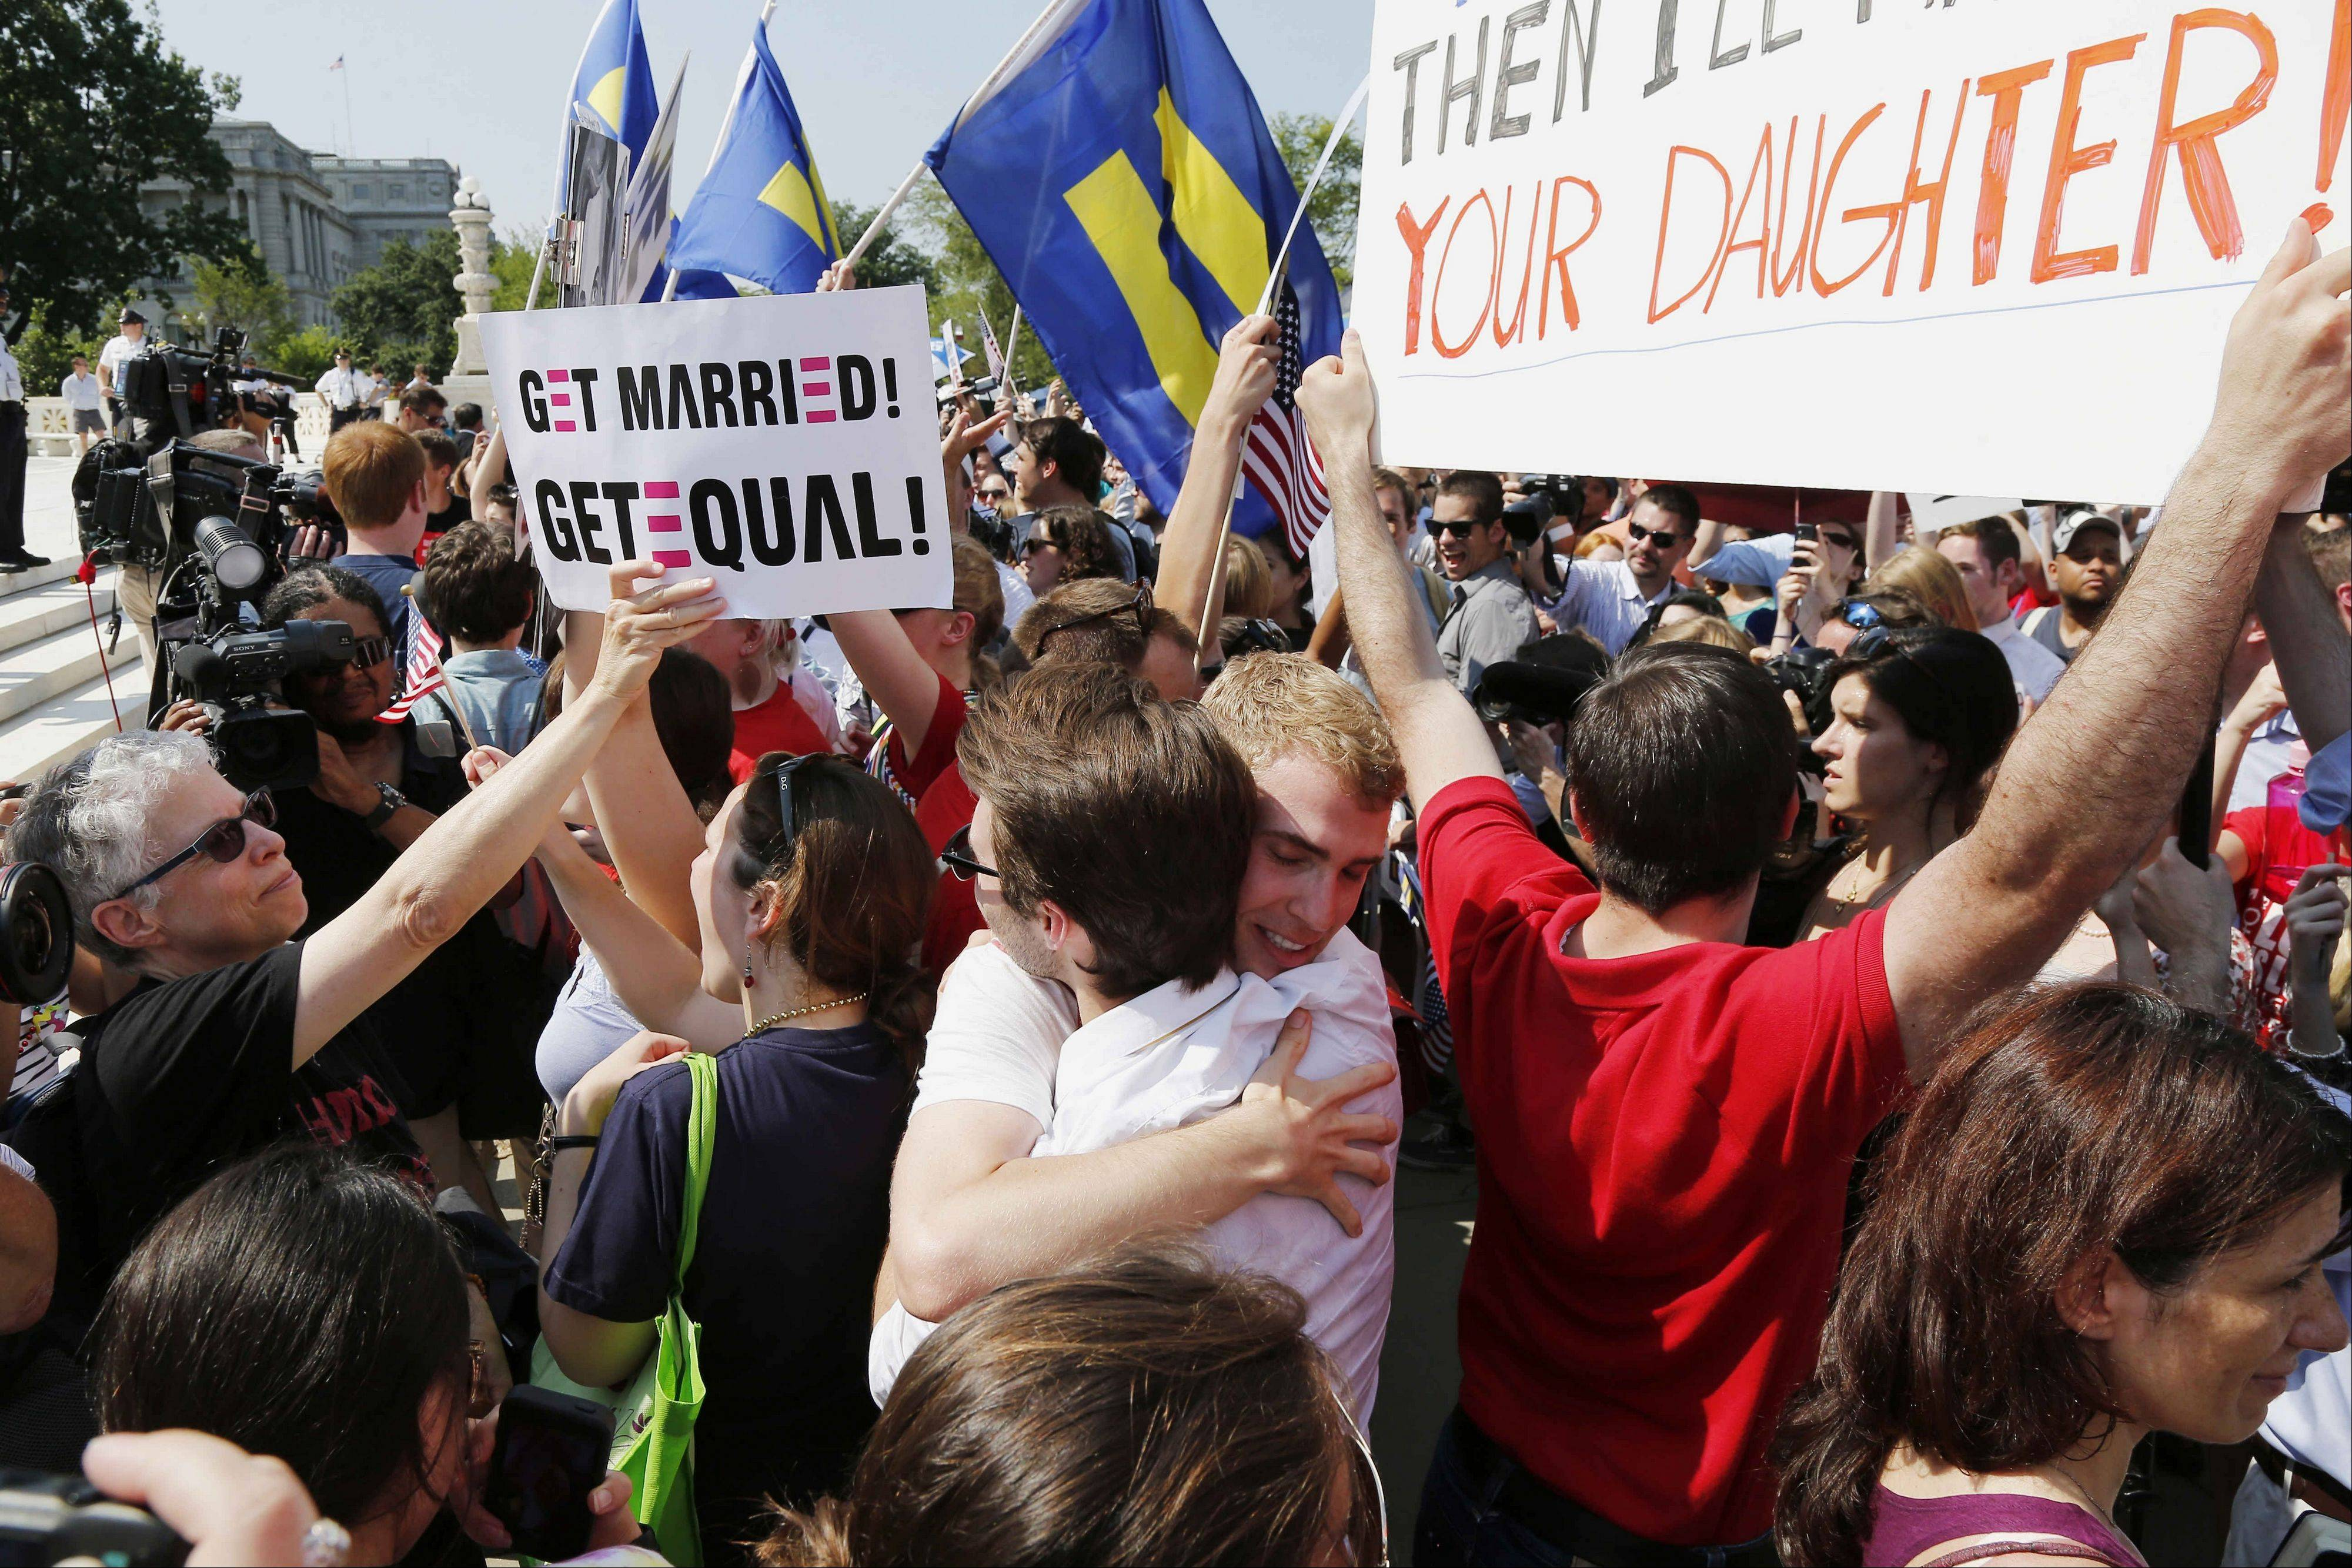 Gay rights supporters erupt in cheers over ruling